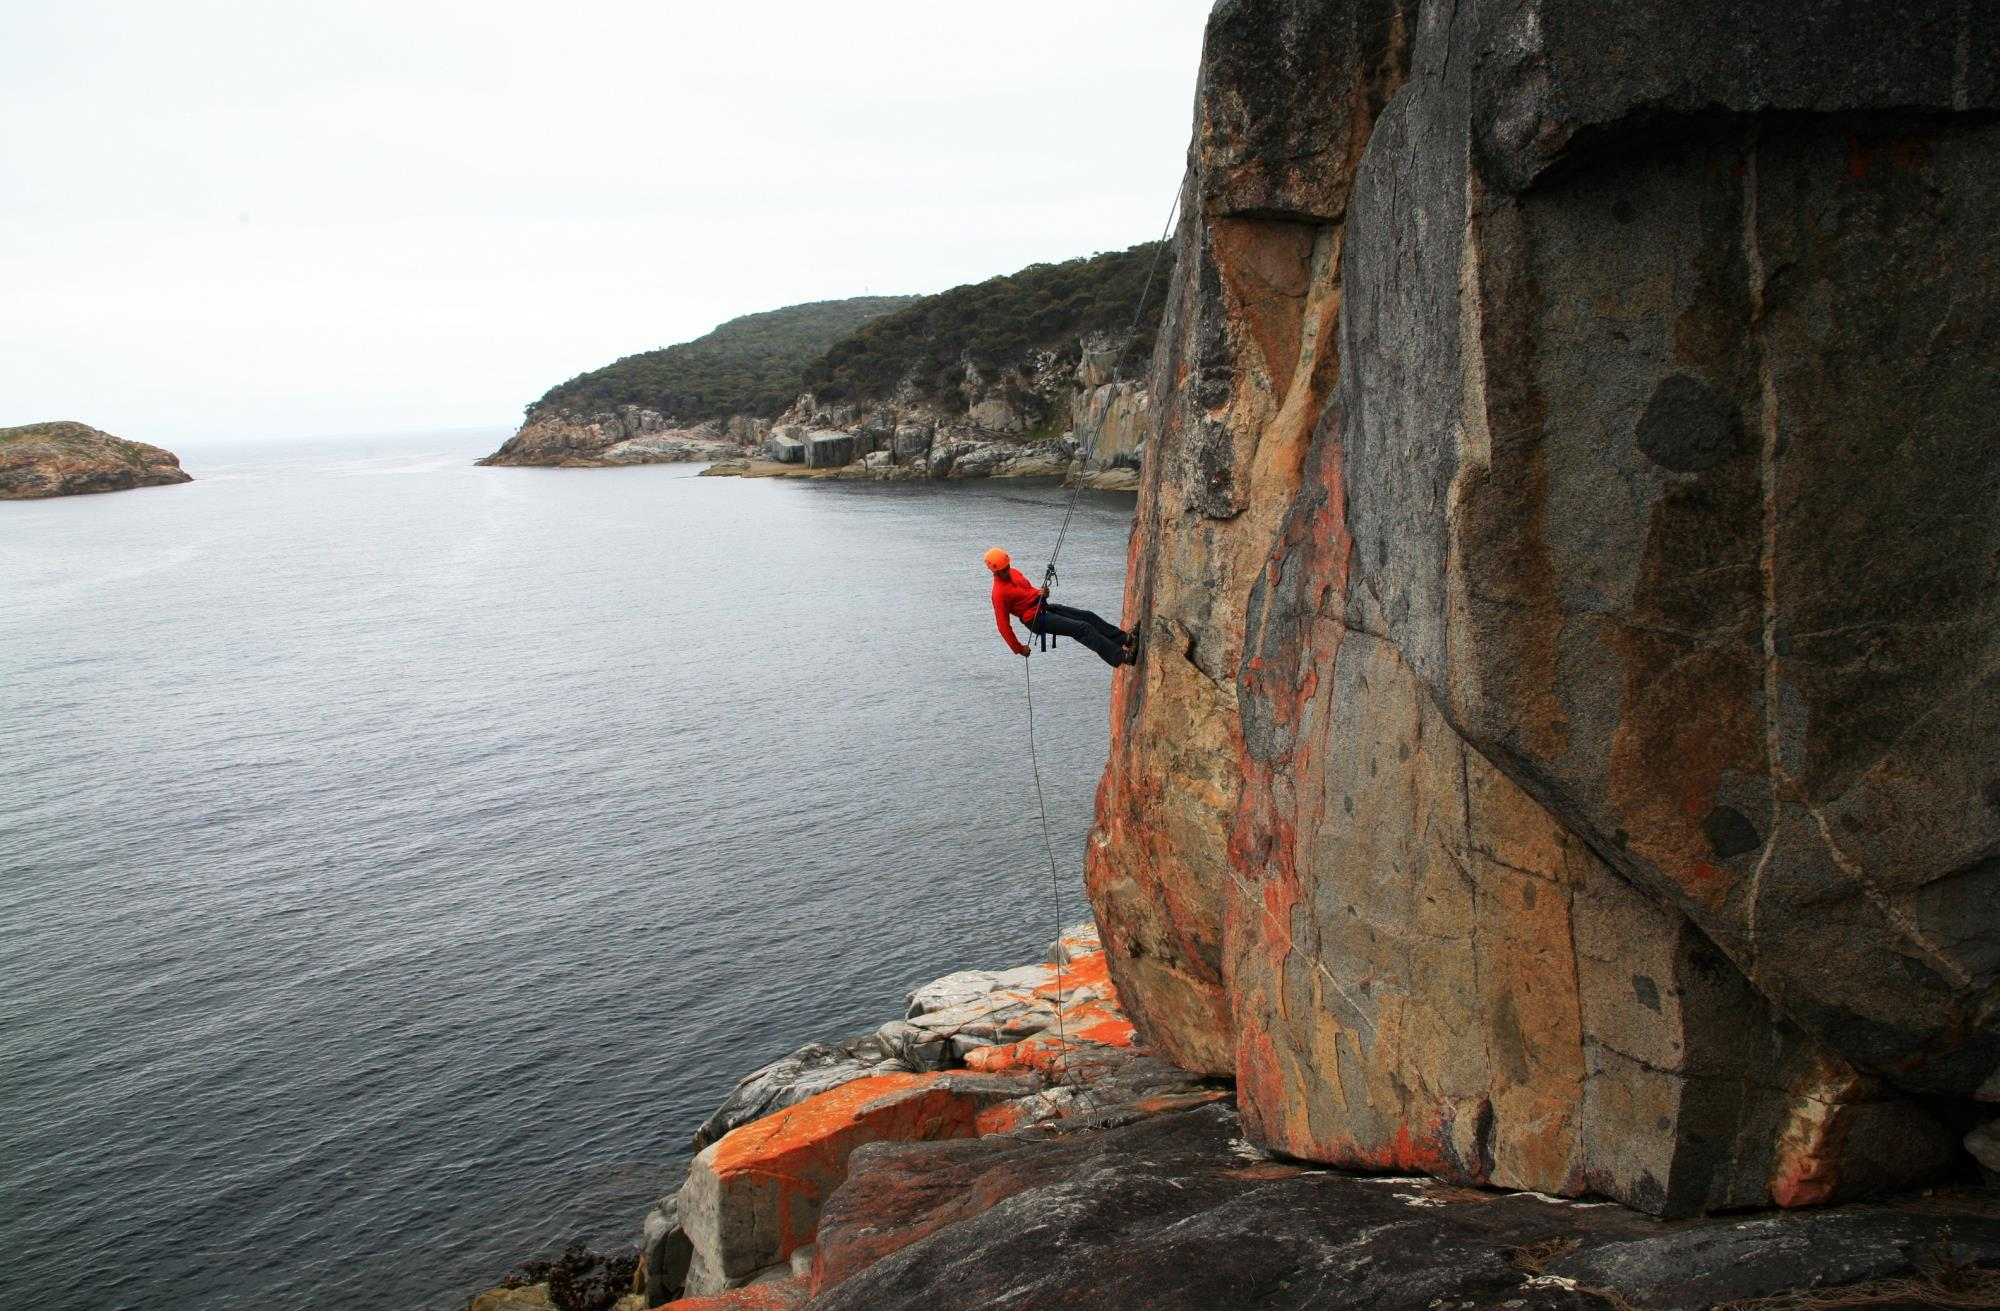 Abseiling at Freycinet, Freycinet National Park